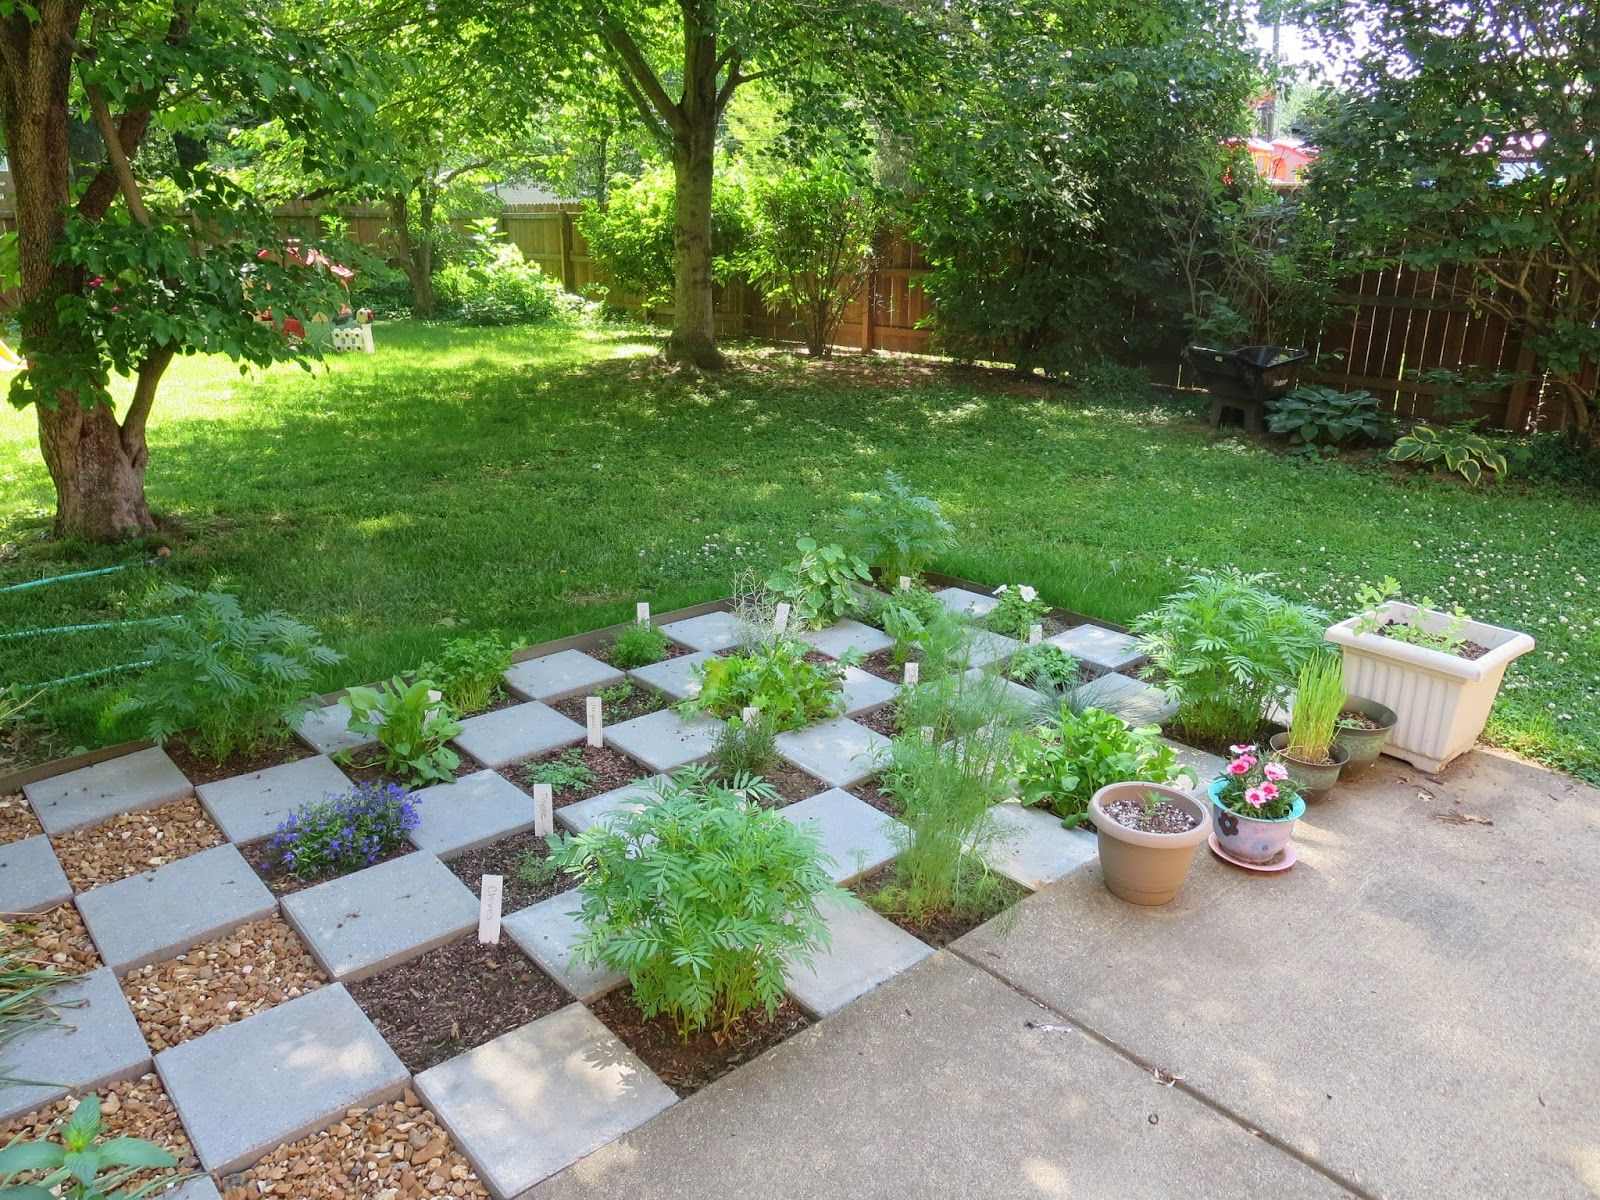 Checkerboard Herb Garden I have some of those pavers but I cant